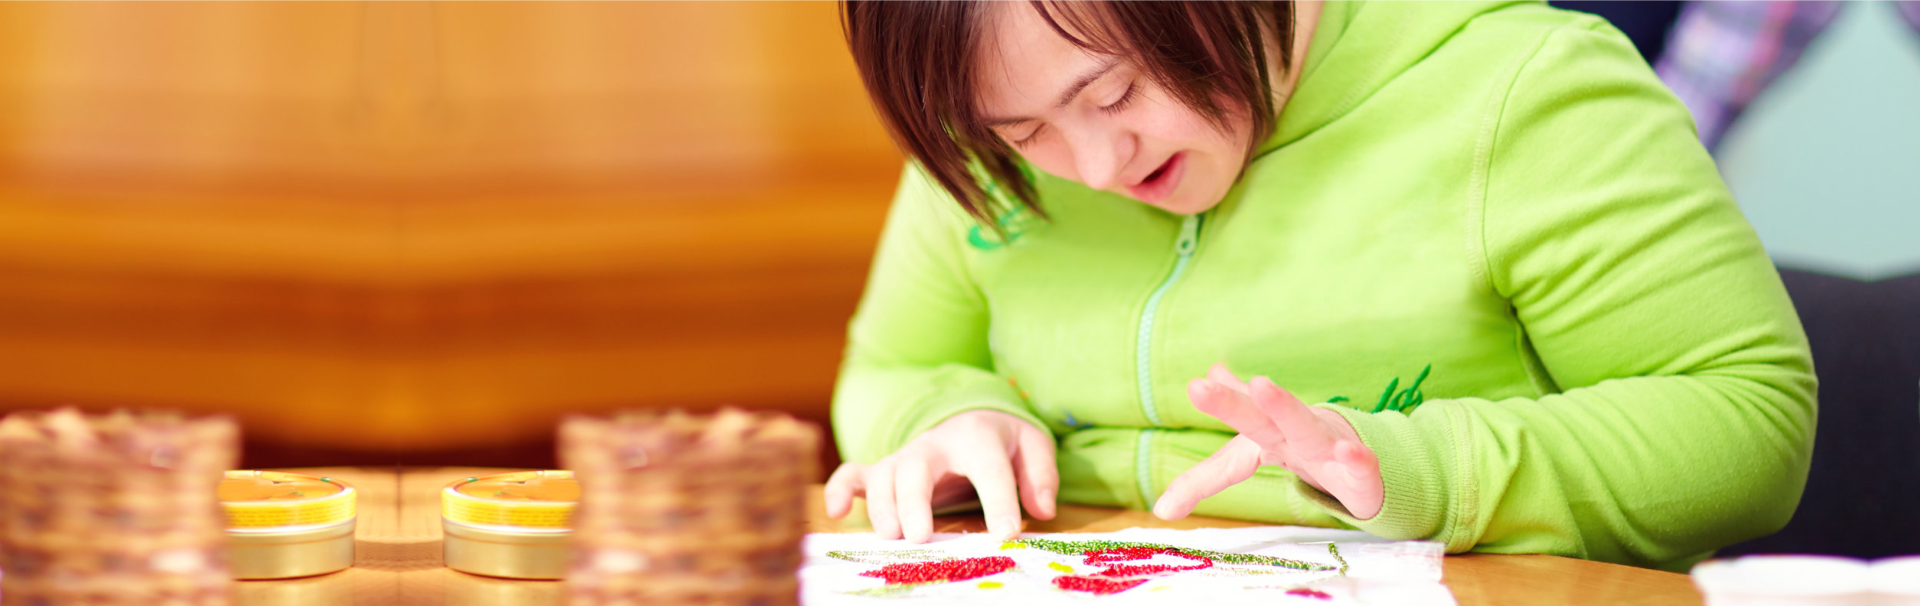 little girl making artwork